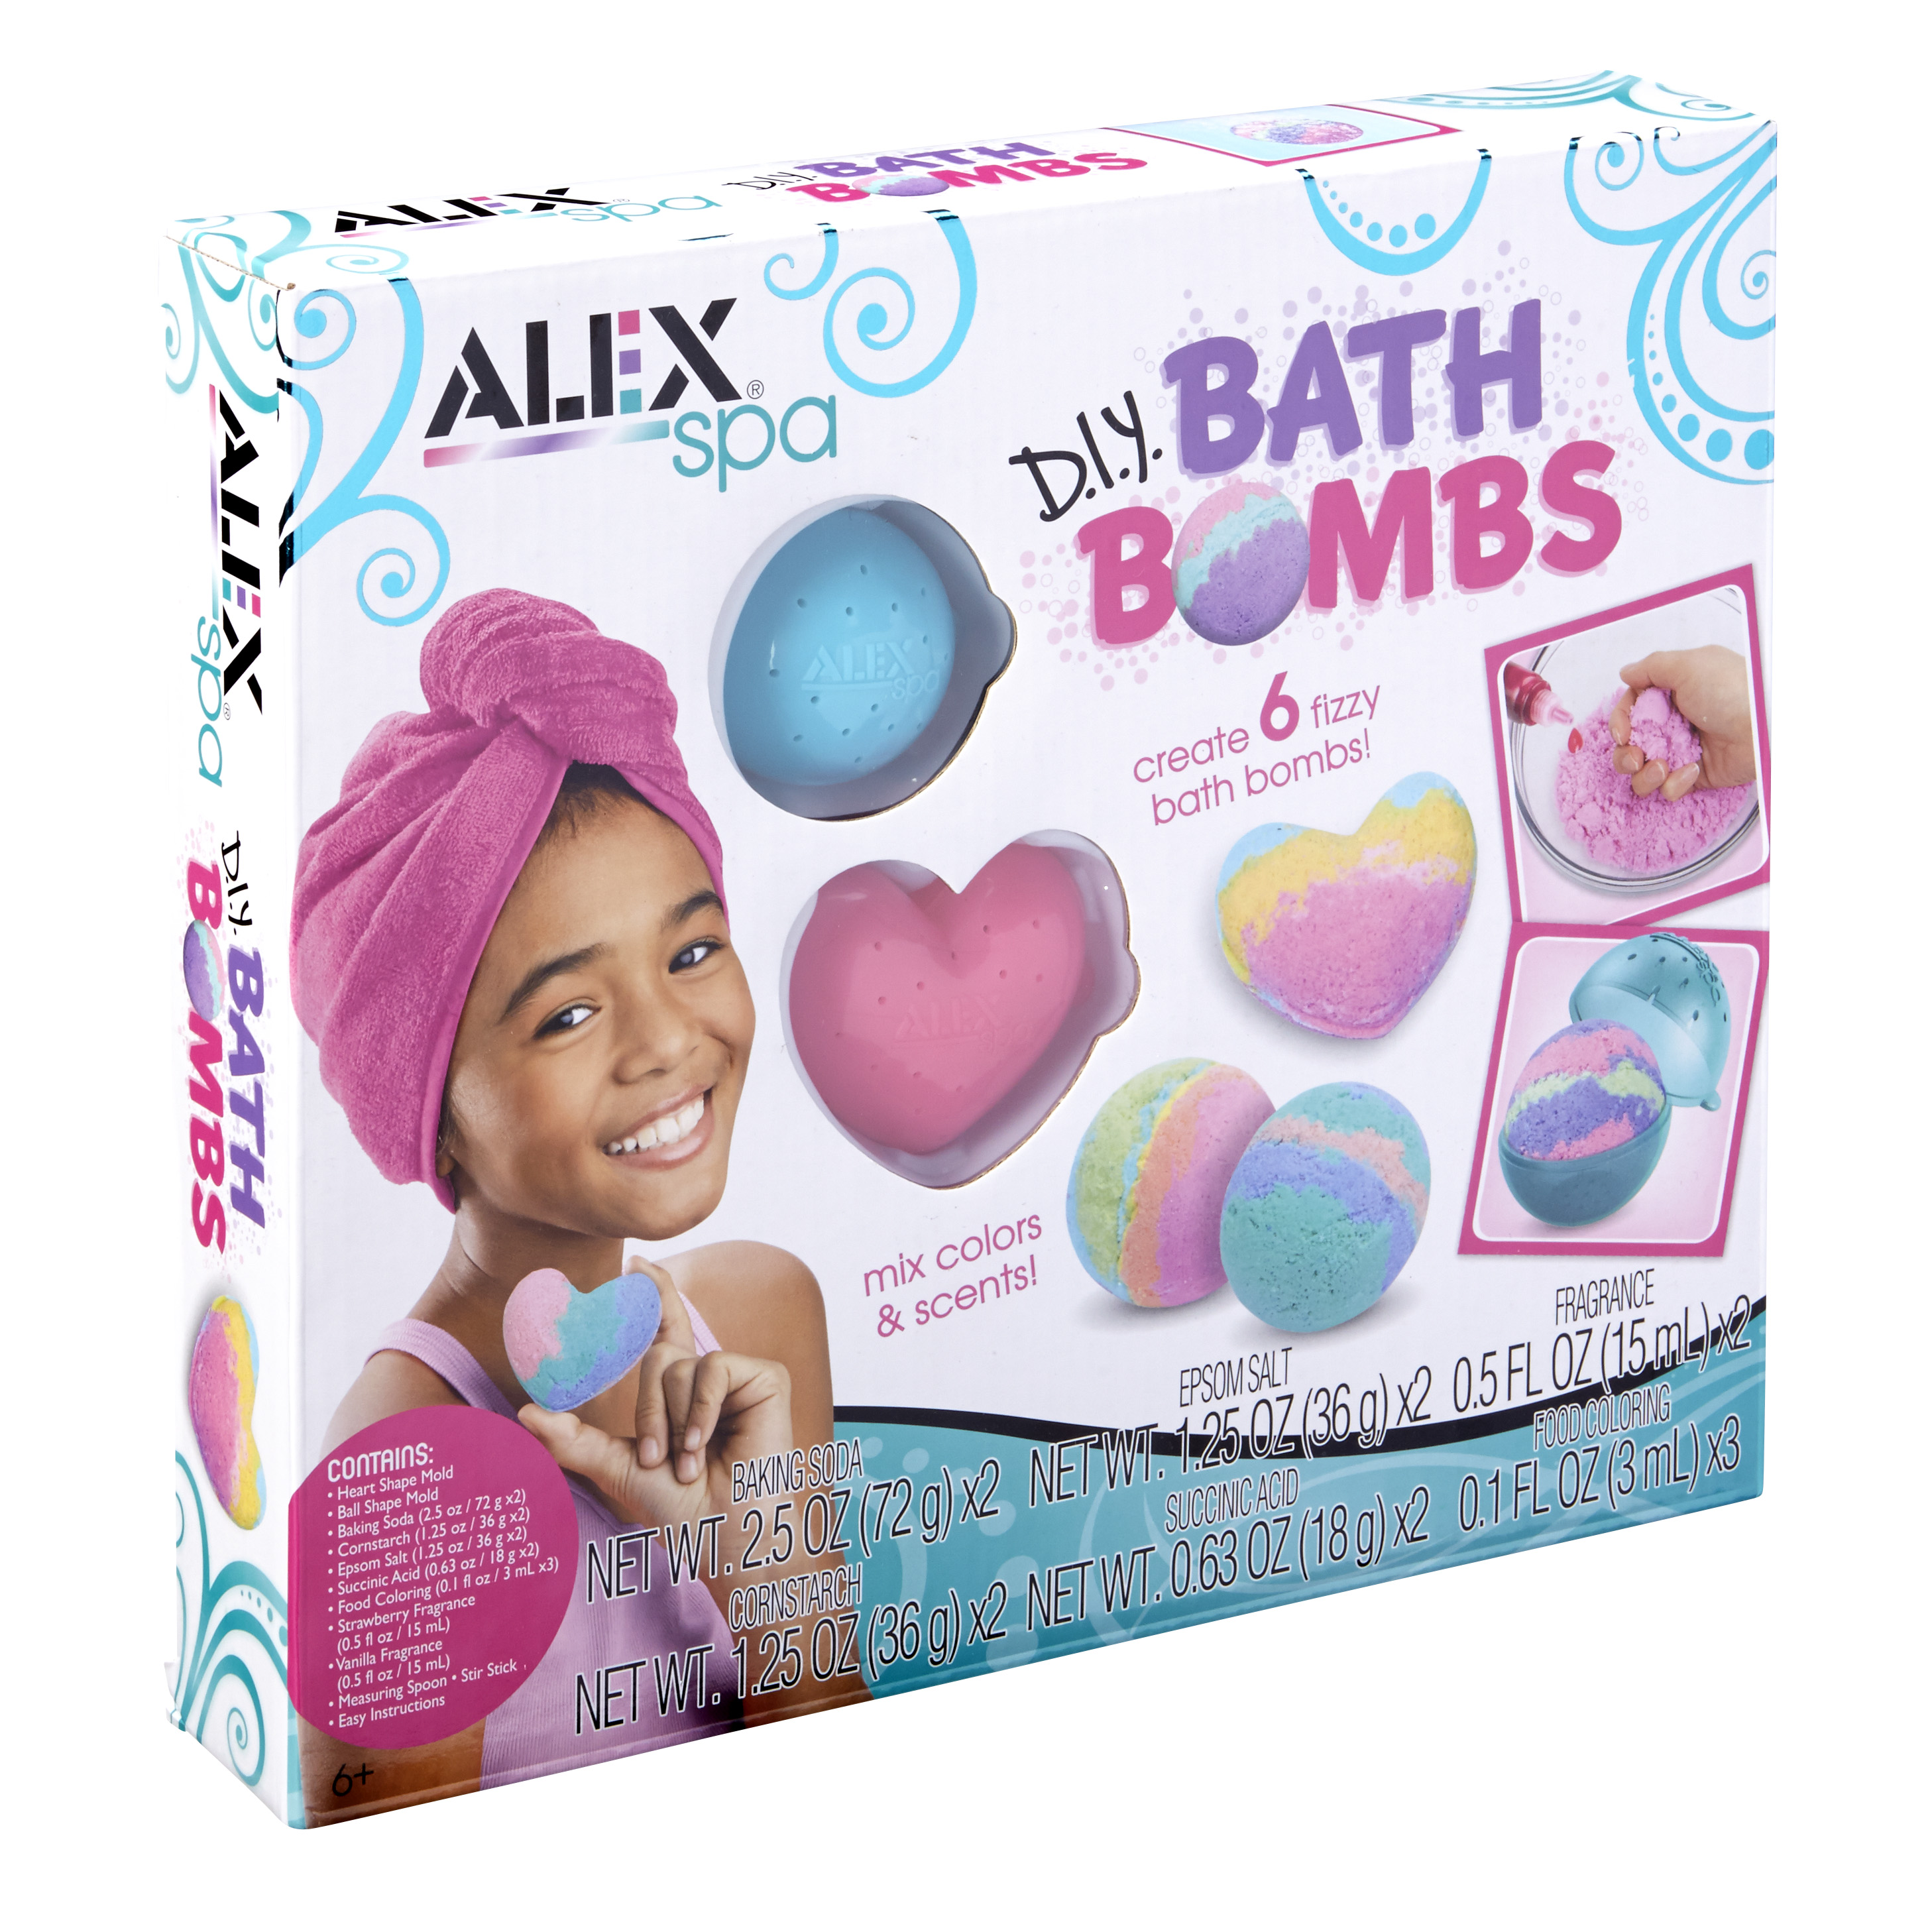 ALEX Spa DIY Bath Bombs